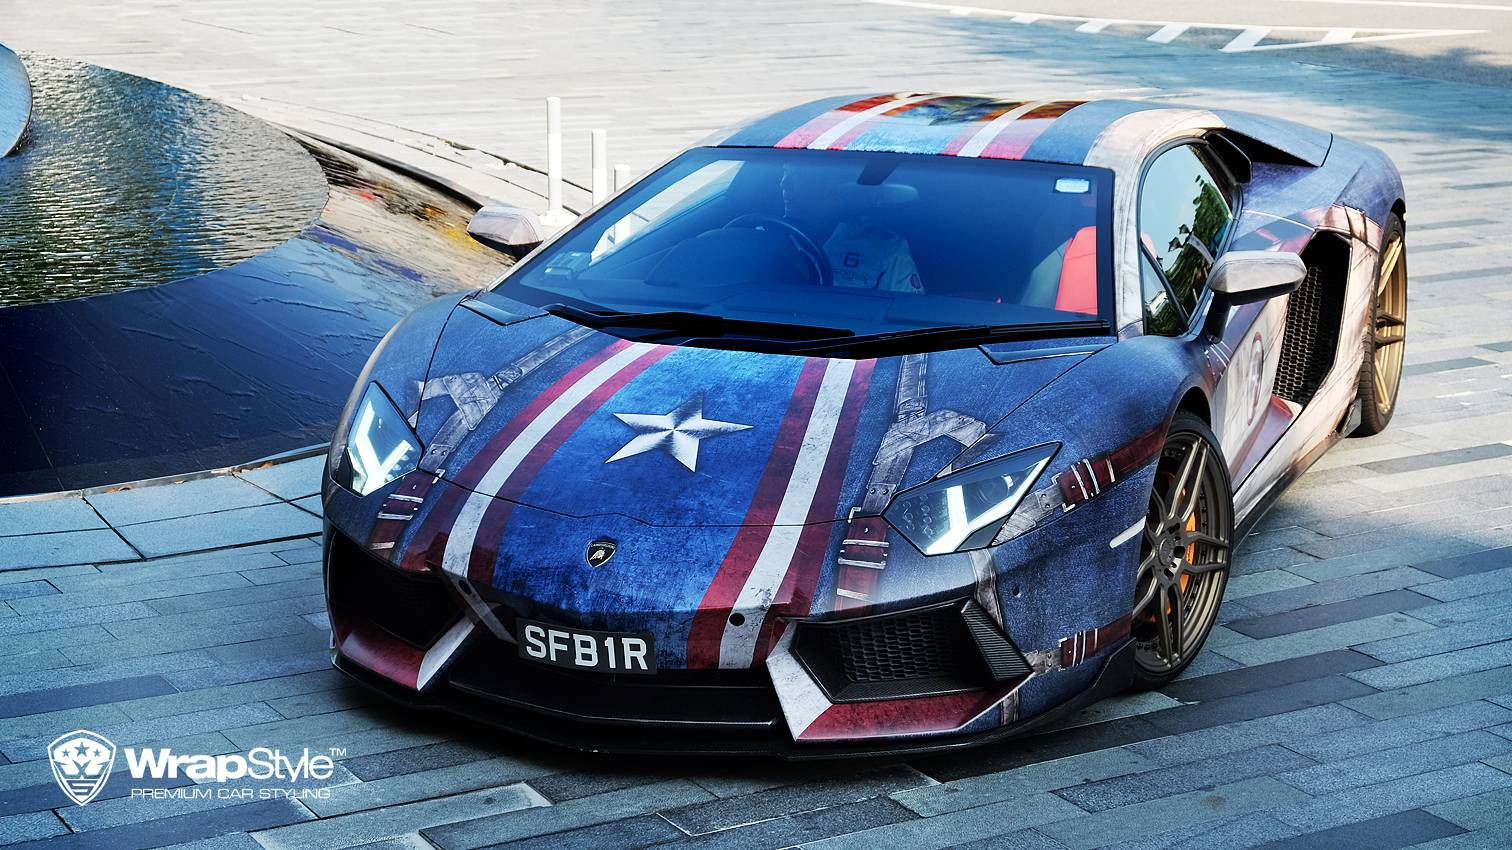 Marvel Superhero Themed Supercars By Wrapstyle Singapore